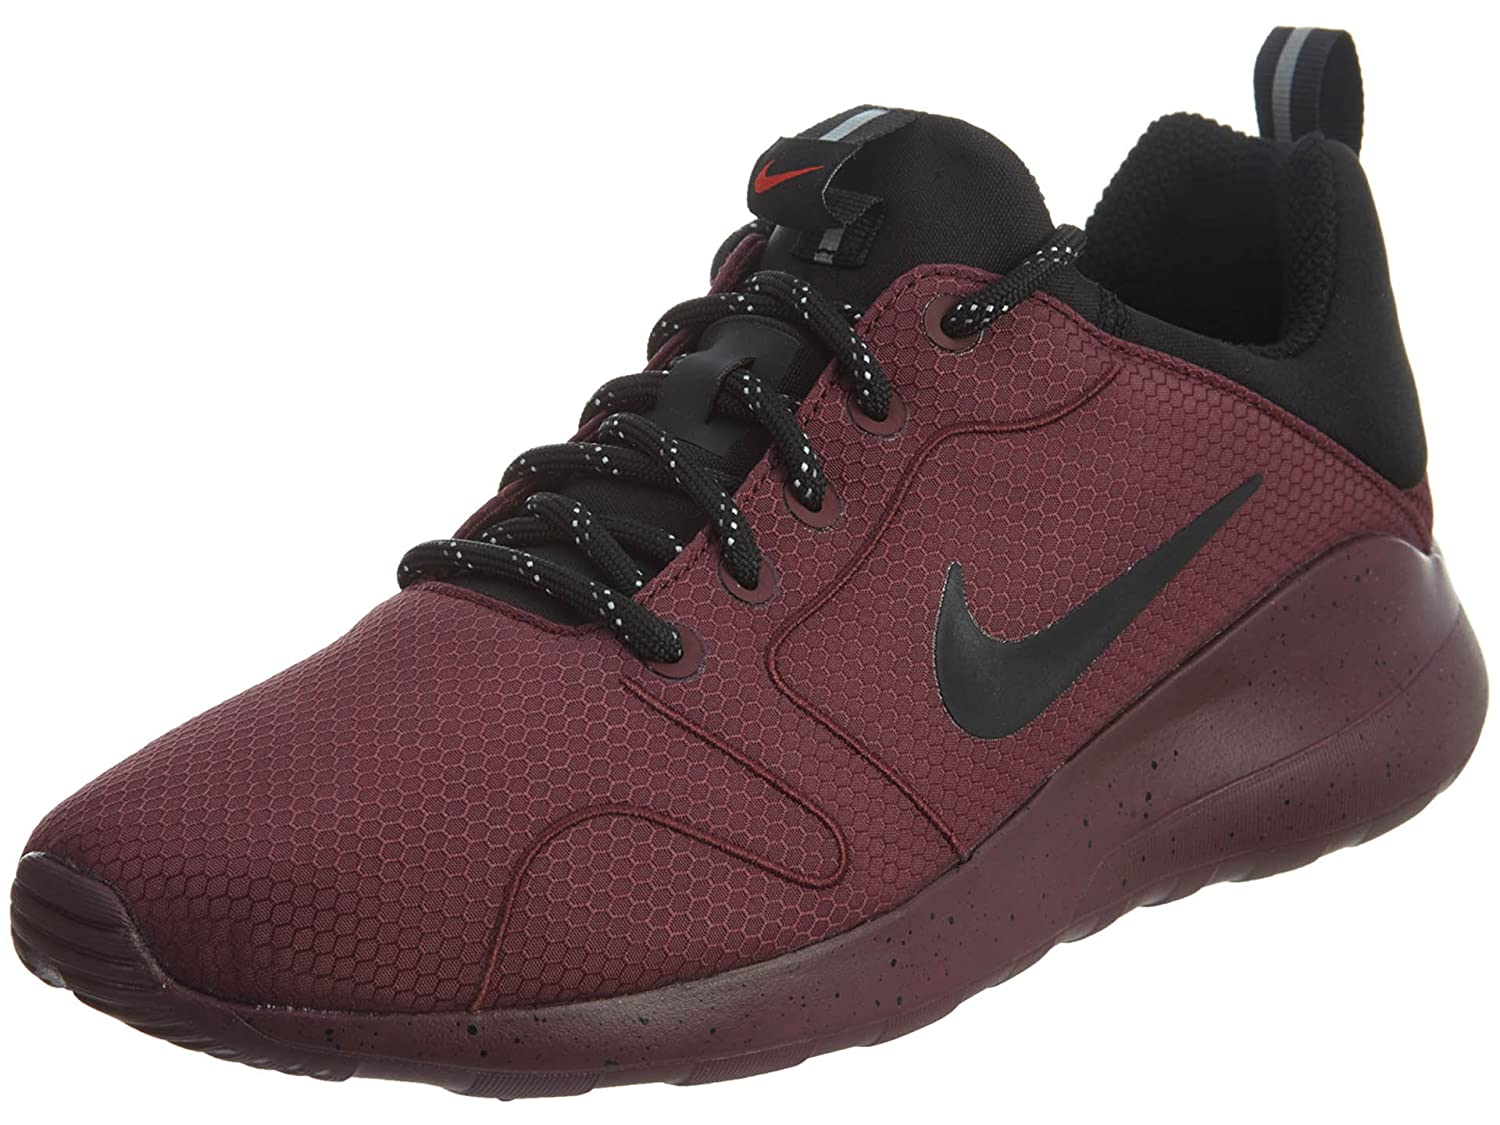 official photos e9f8c a6297 Nike Kaishi 2.0 SE Men s Shoes Night Maroon Black Light Crimson 844838-600  (10 D(M) US)  Buy Online at Low Prices in India - Amazon.in